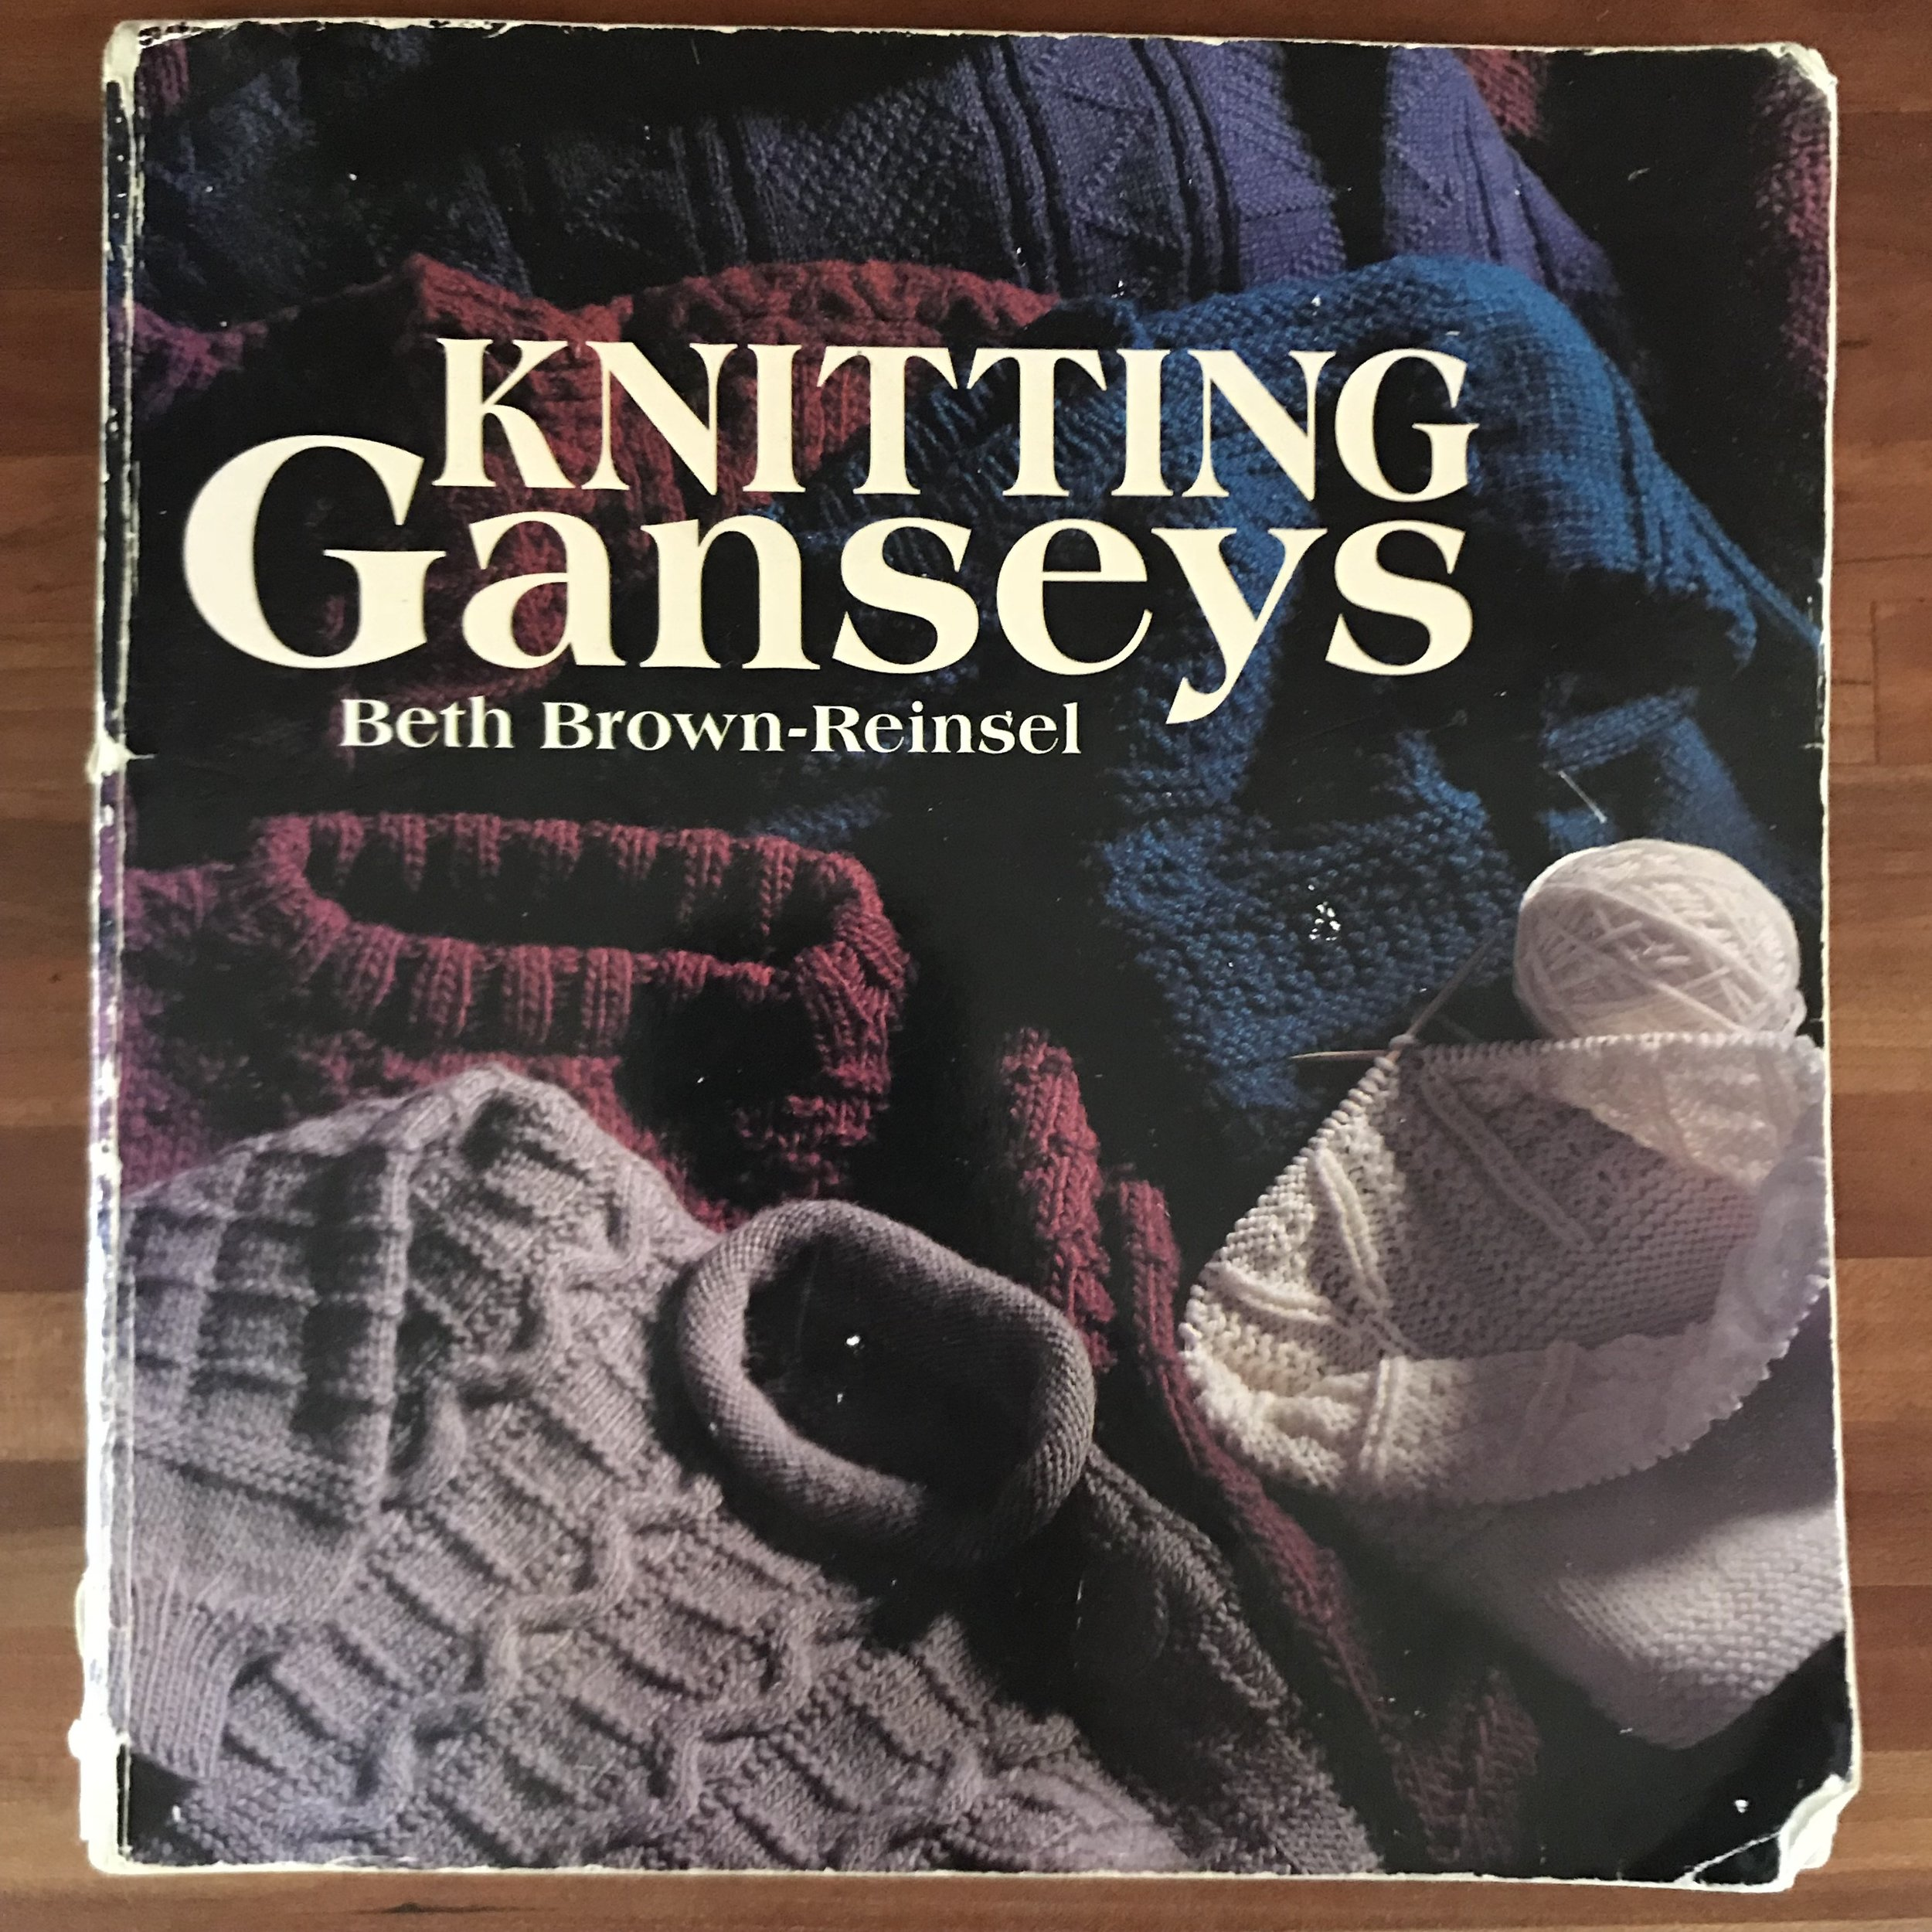 Knitting Ganseys - first edition.jpg